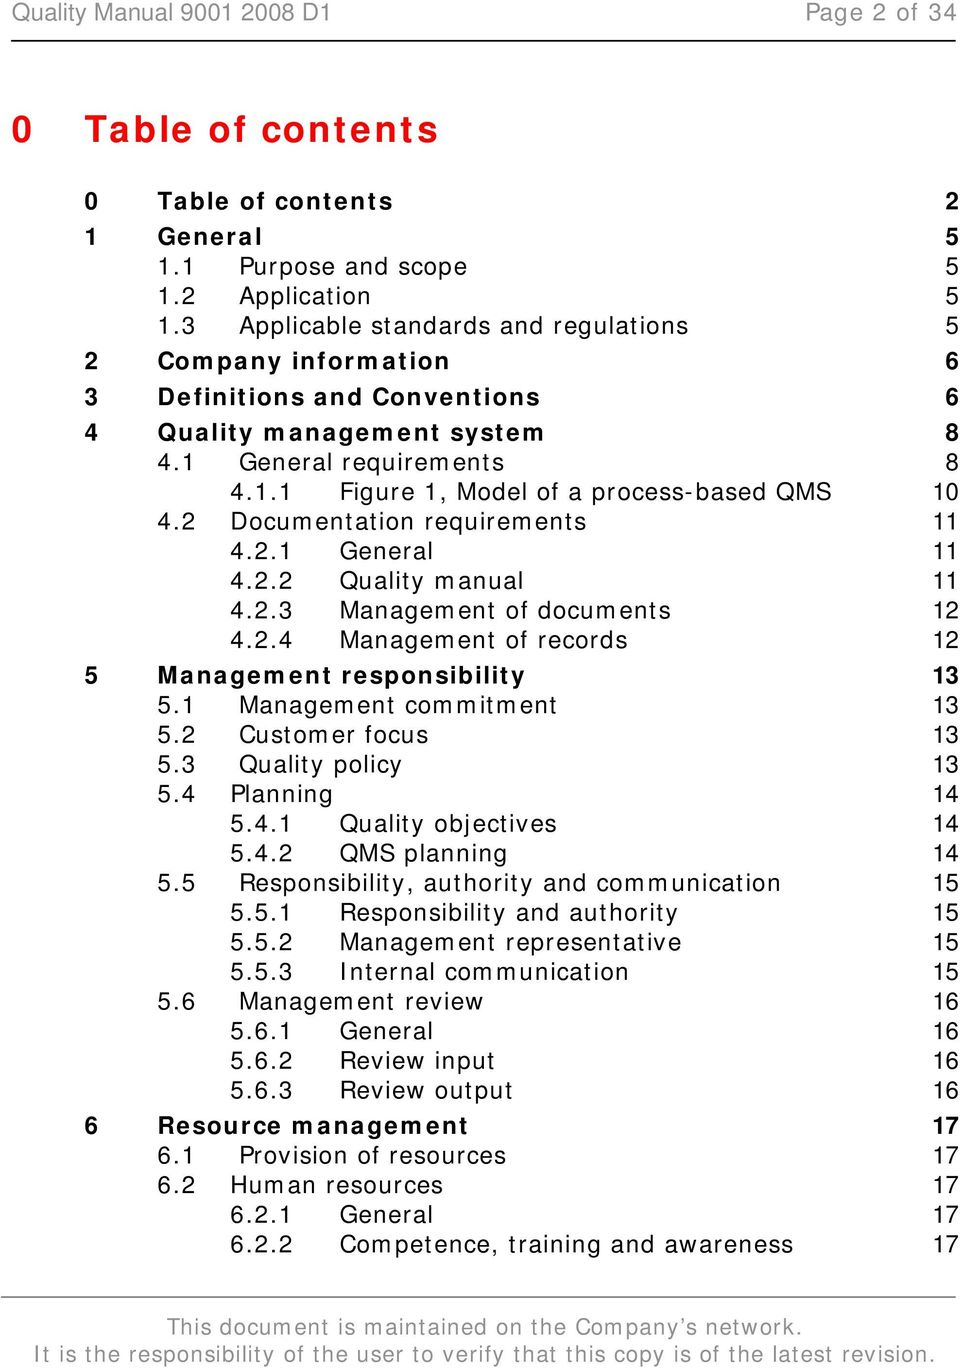 2 Documentation requirements 11 4.2.1 General 11 4.2.2 Quality manual 11 4.2.3 Management of documents 12 4.2.4 Management of records 12 5 Management responsibility 13 5.1 Management commitment 13 5.